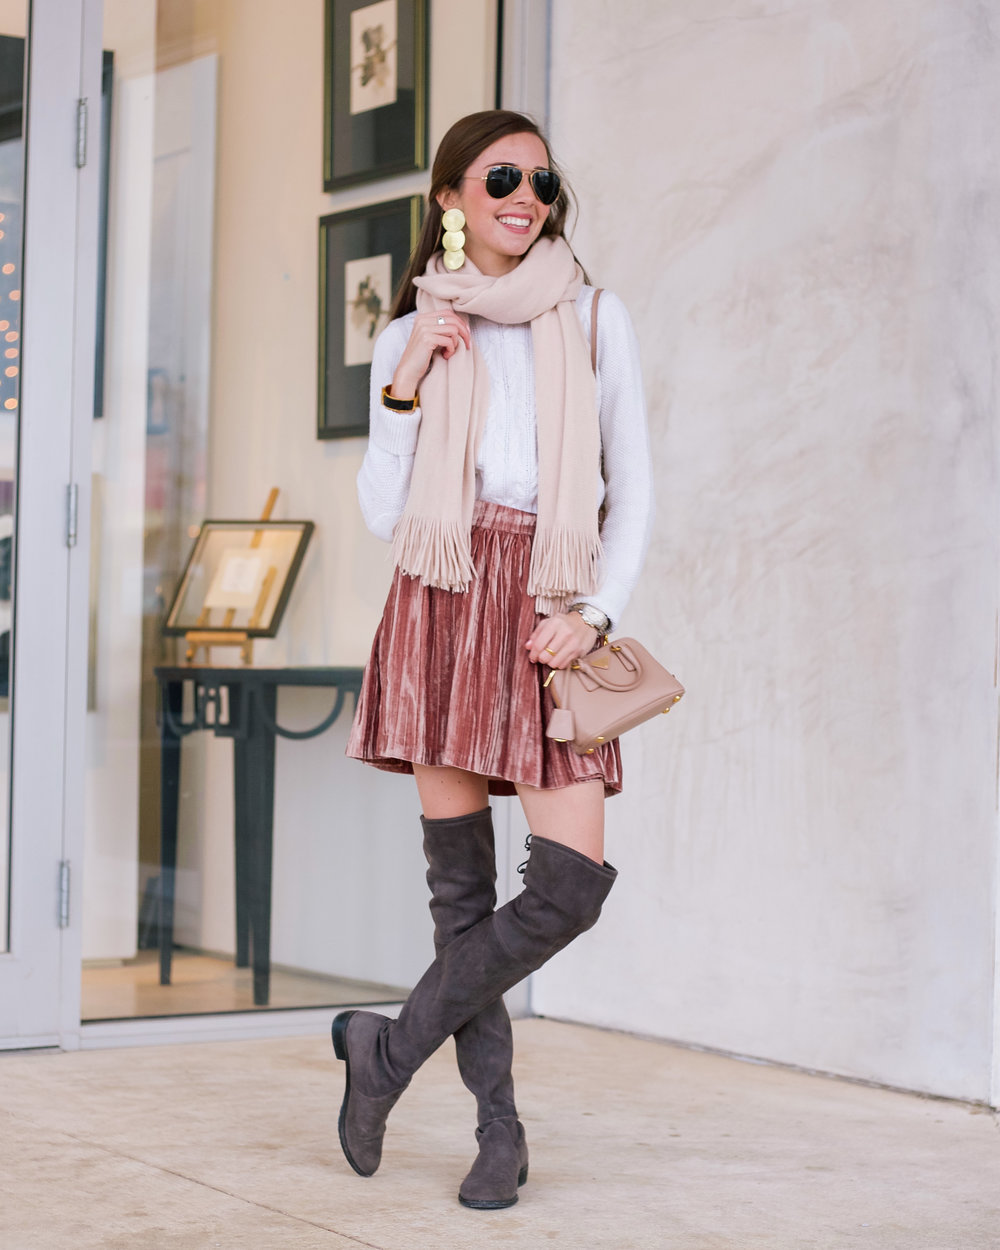 fashion blogger lcb style winter outfit madewell-4.jpg